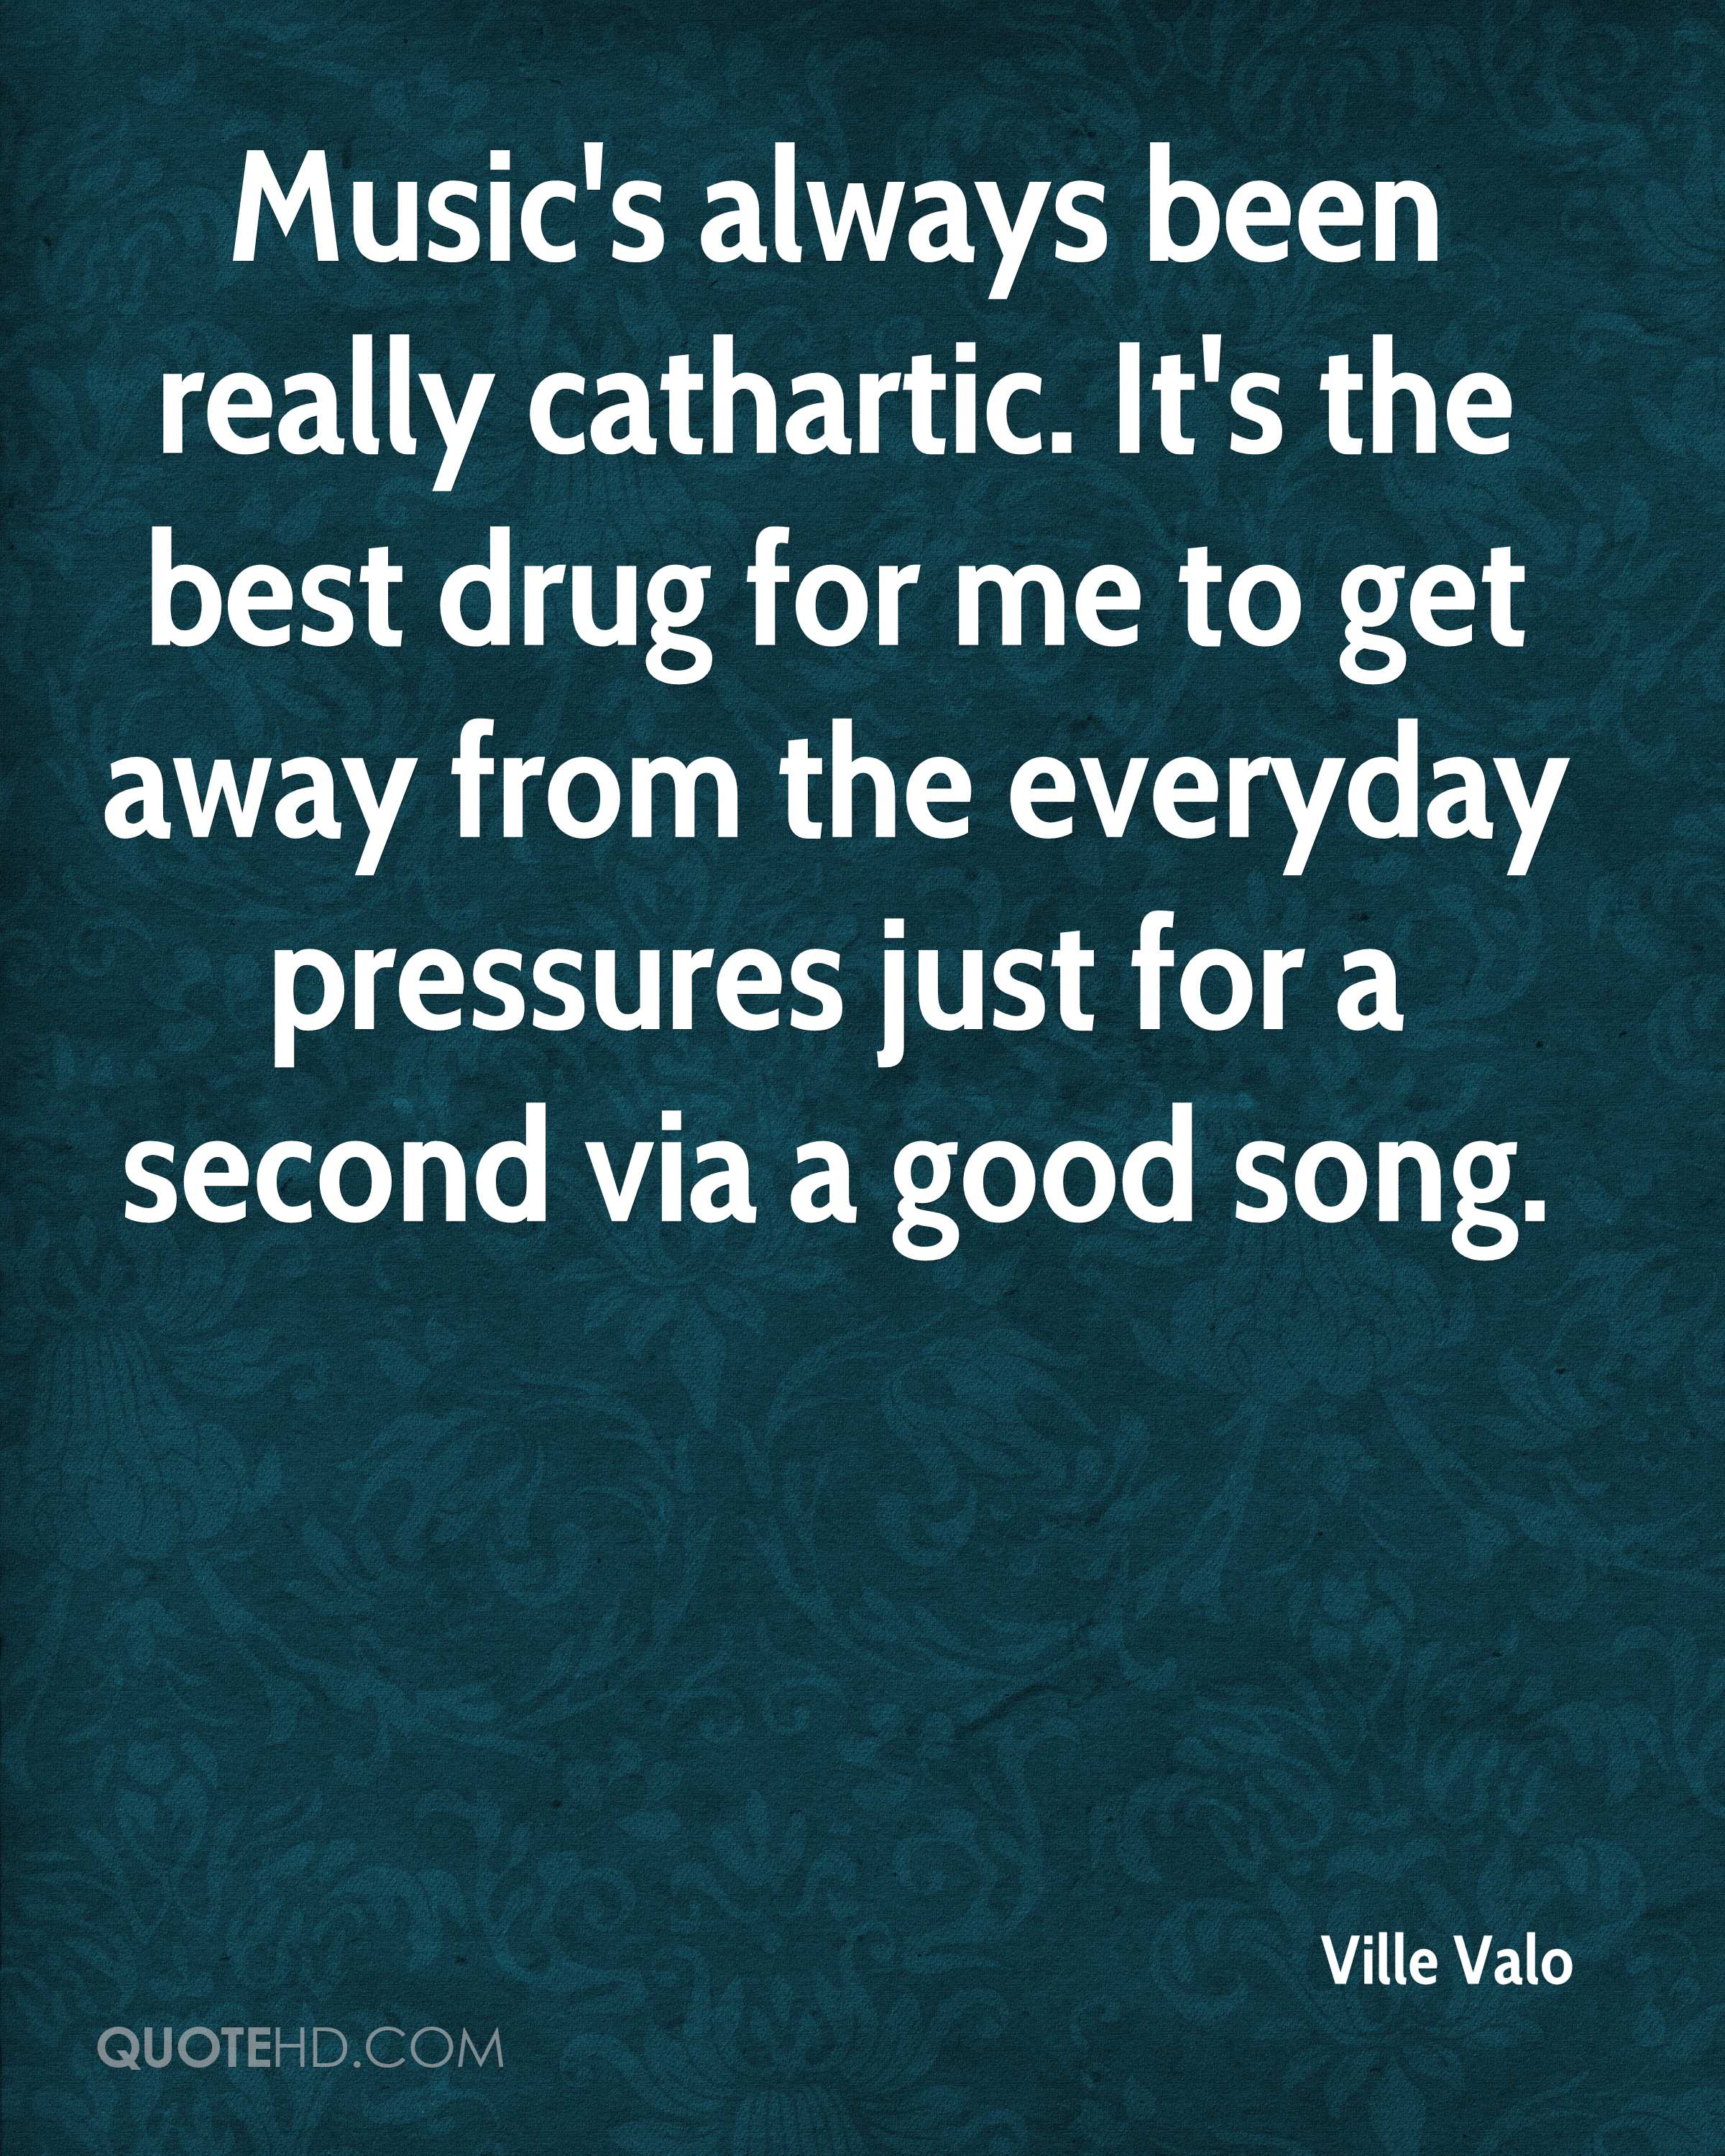 Music's always been really cathartic. It's the best drug for me to get away from the everyday pressures just for a second via a good song.